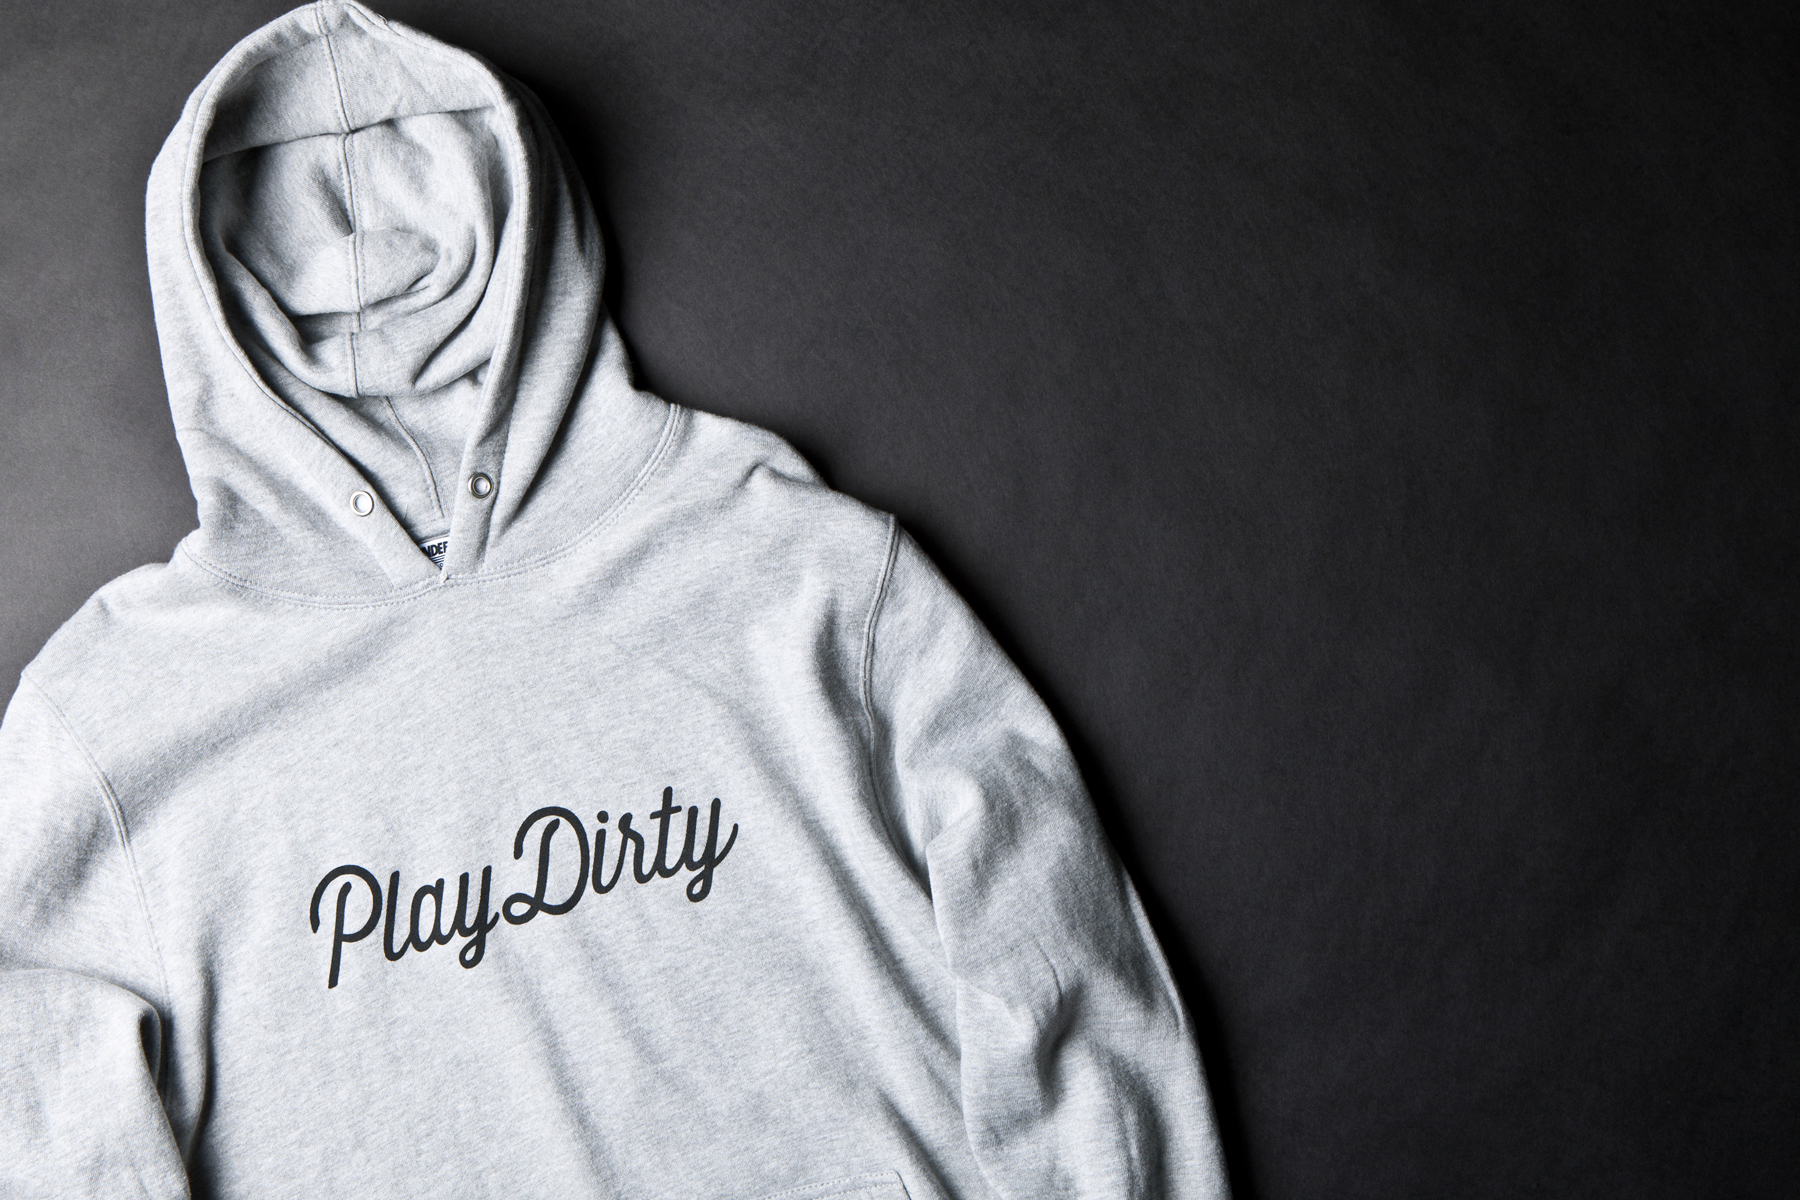 http://hypebeast.com/2014/1/undefeated-2013-play-dirty-collection